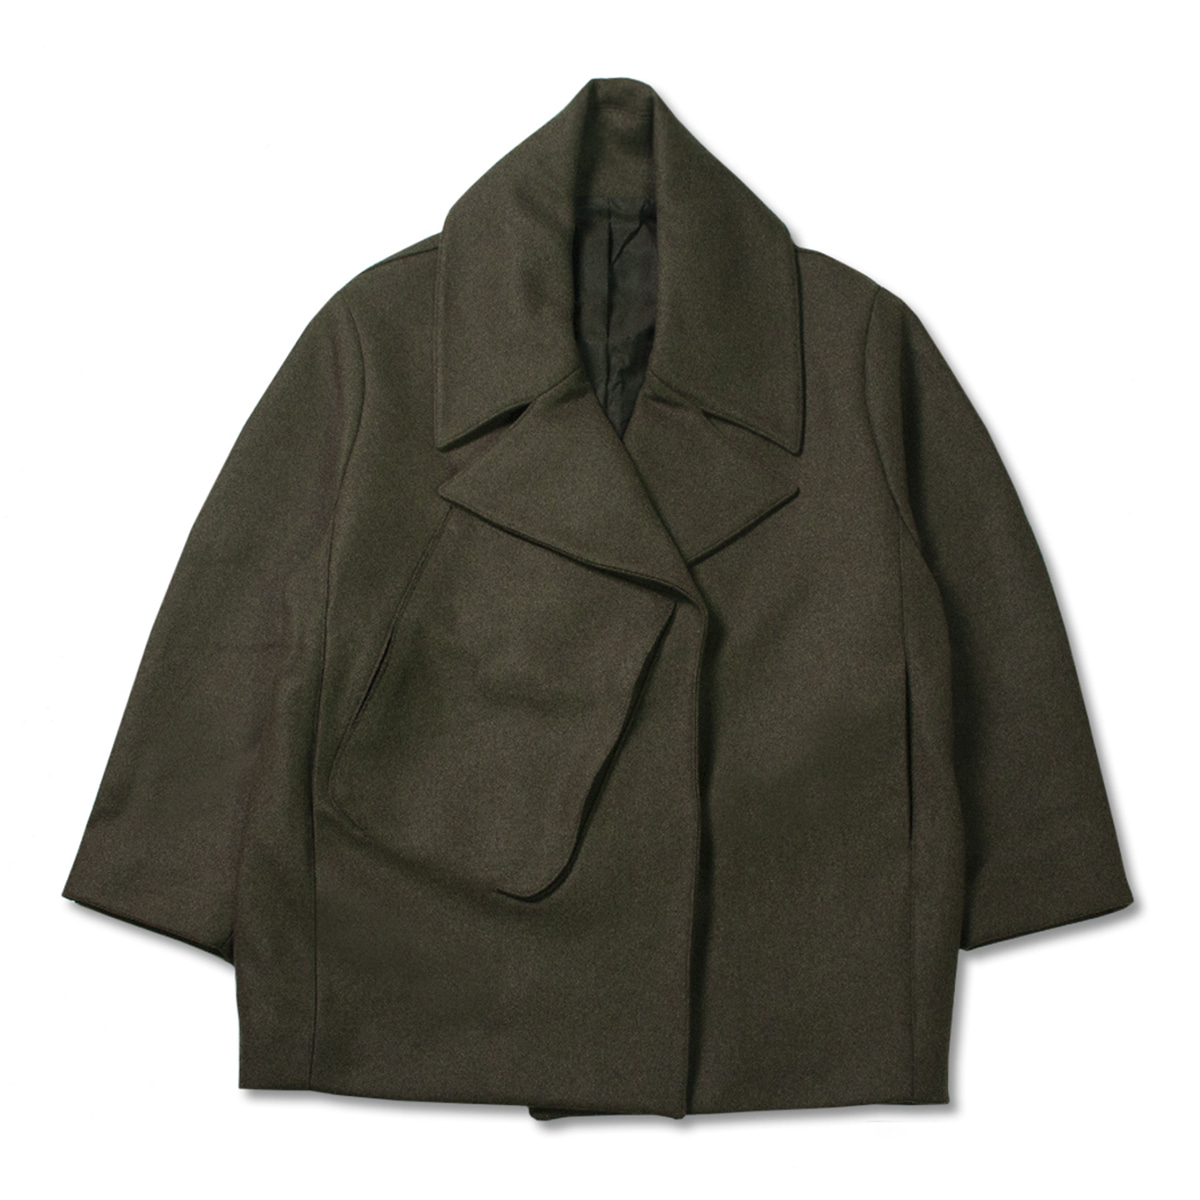 [STUDIO NICHOLSON] OVERSIZED COAT WITH 3D POCKET 'FOREST GREEN'